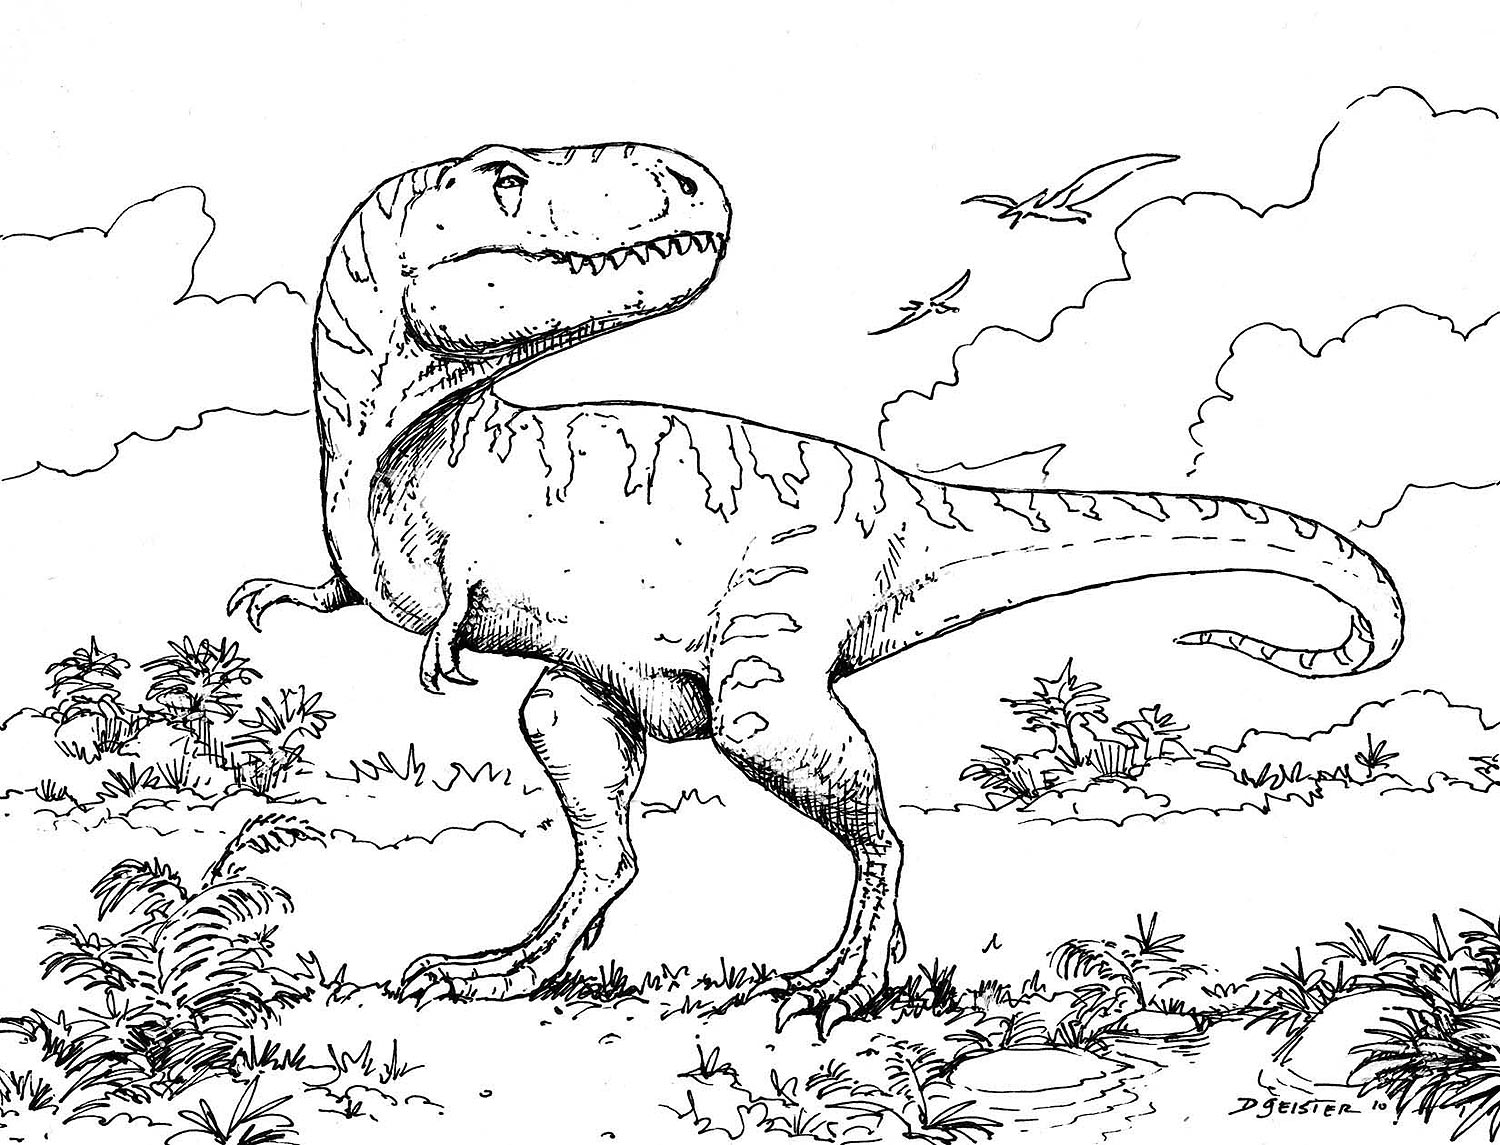 free printable dinosaur coloring pages for kids - Dinosaur Printable Coloring Pages